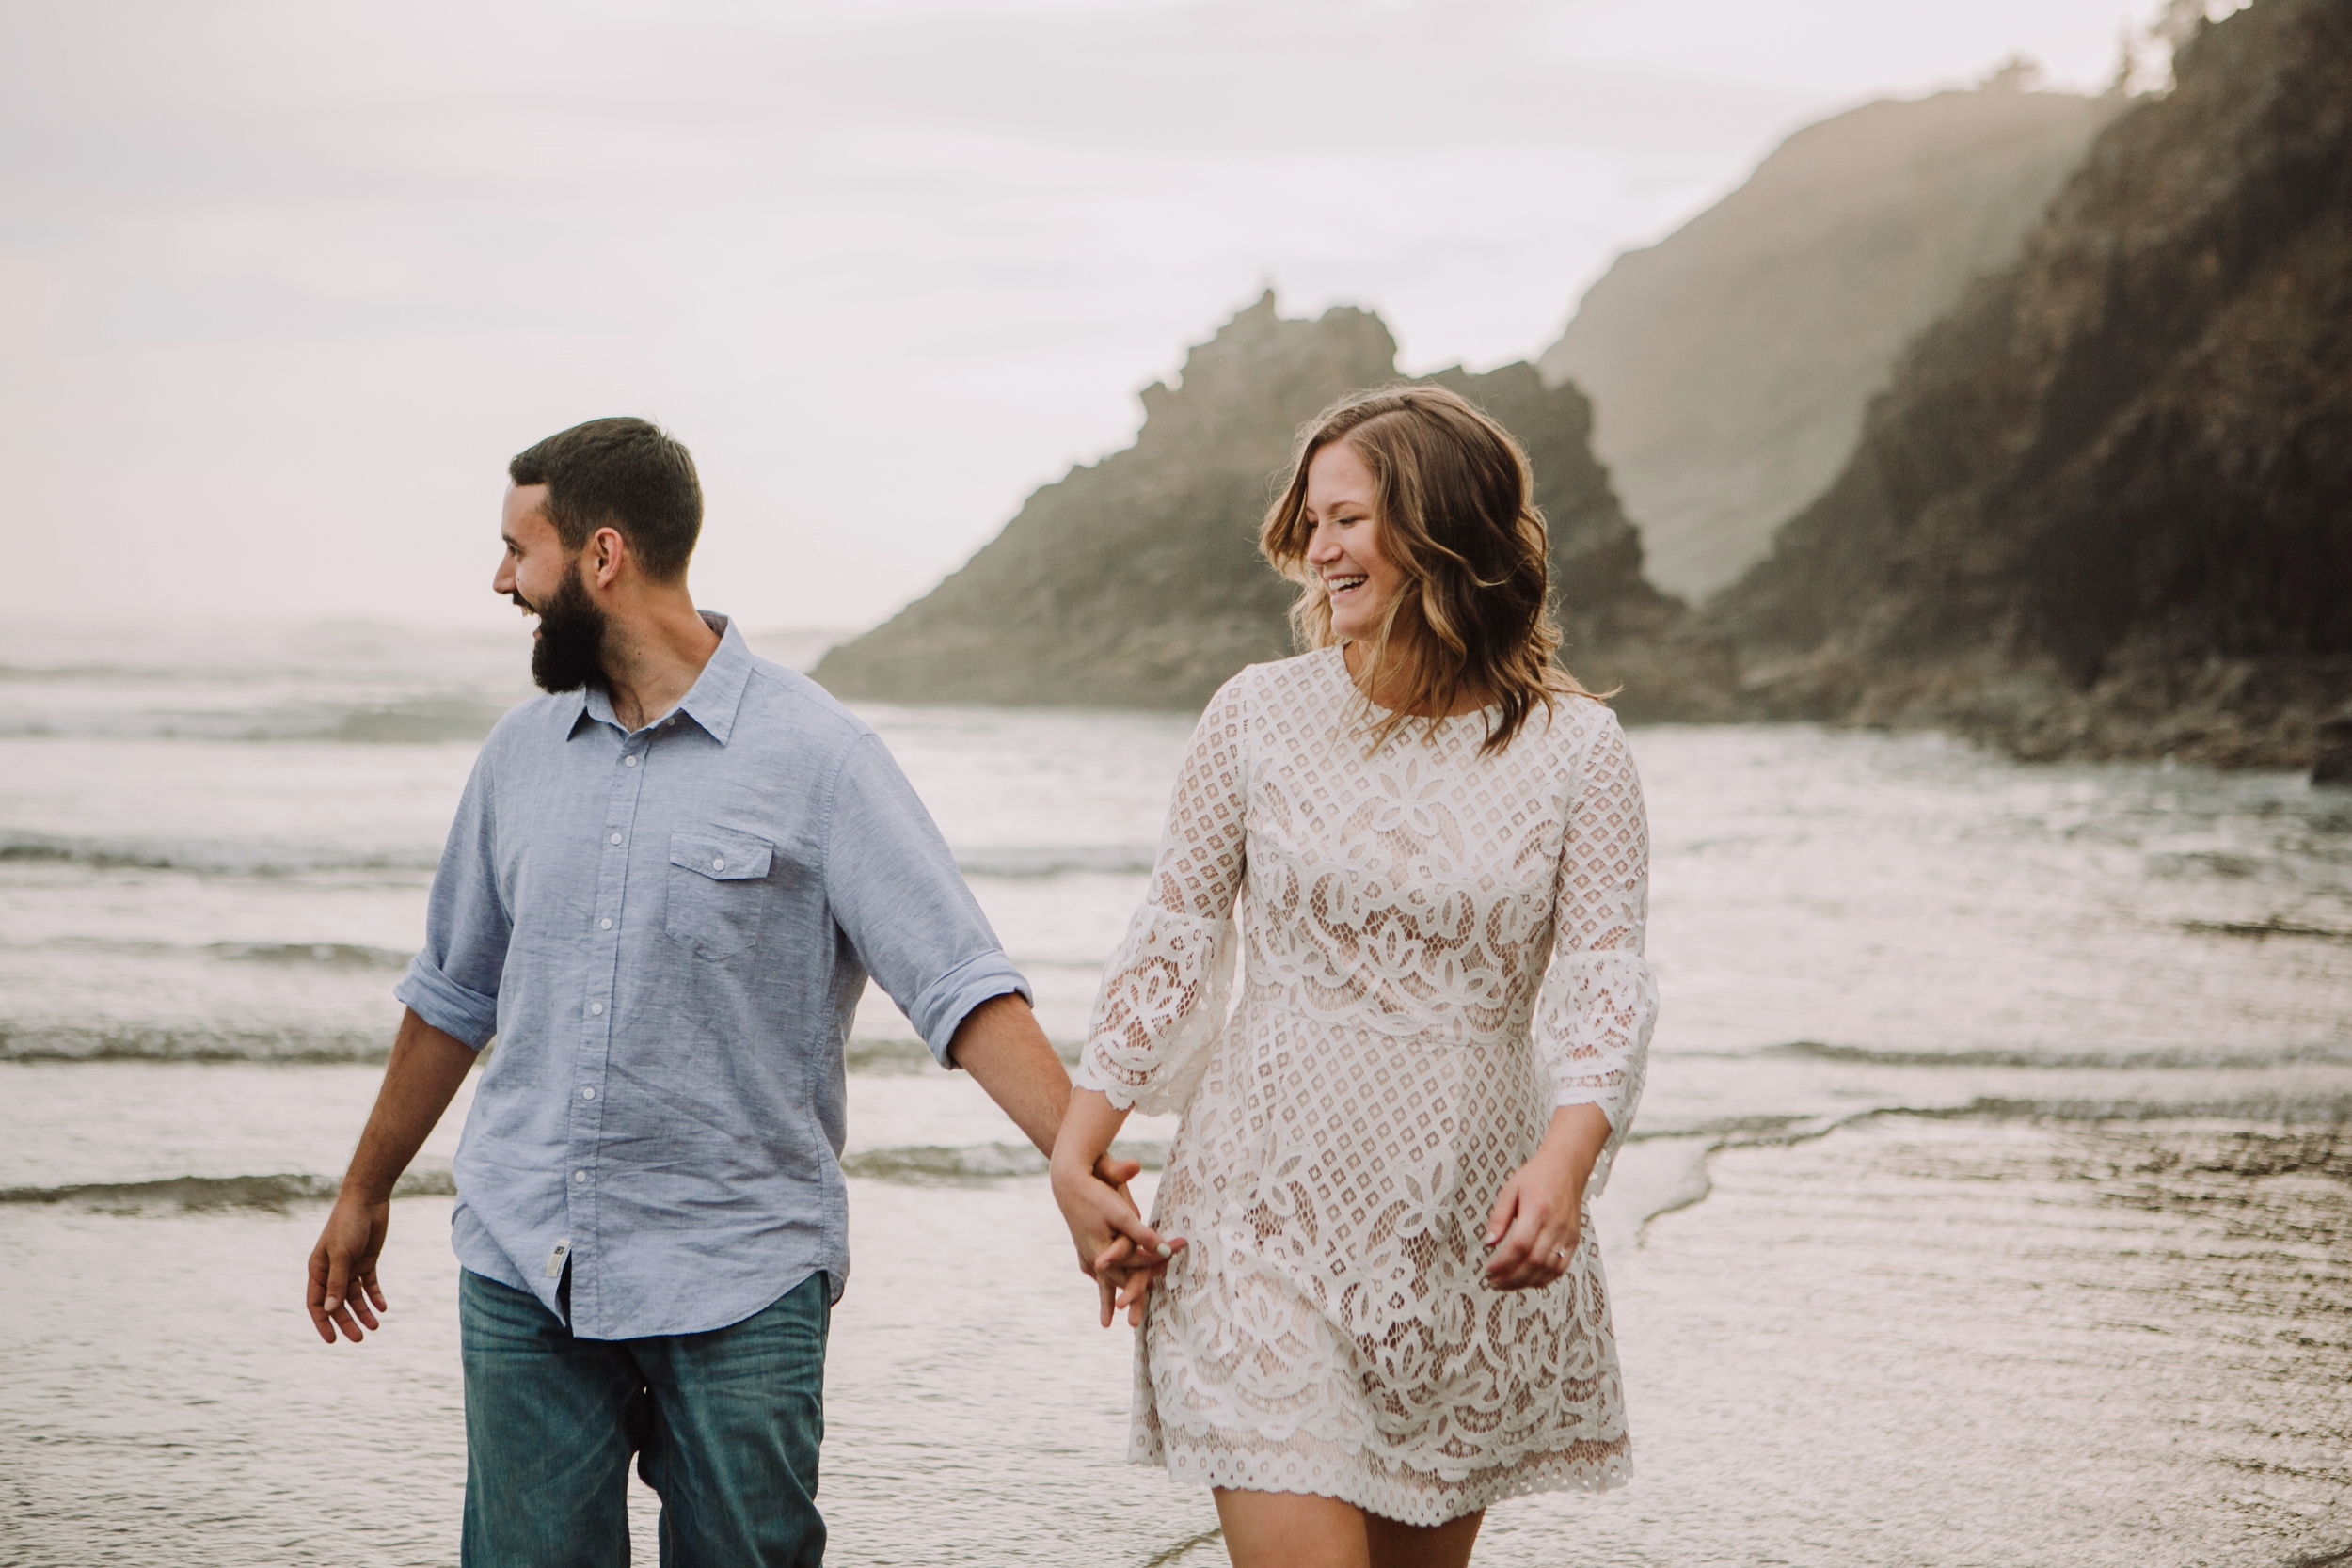 Oregon Coast Cannon Beach Engagement Session- Grace and Jaden photography (5).jpg